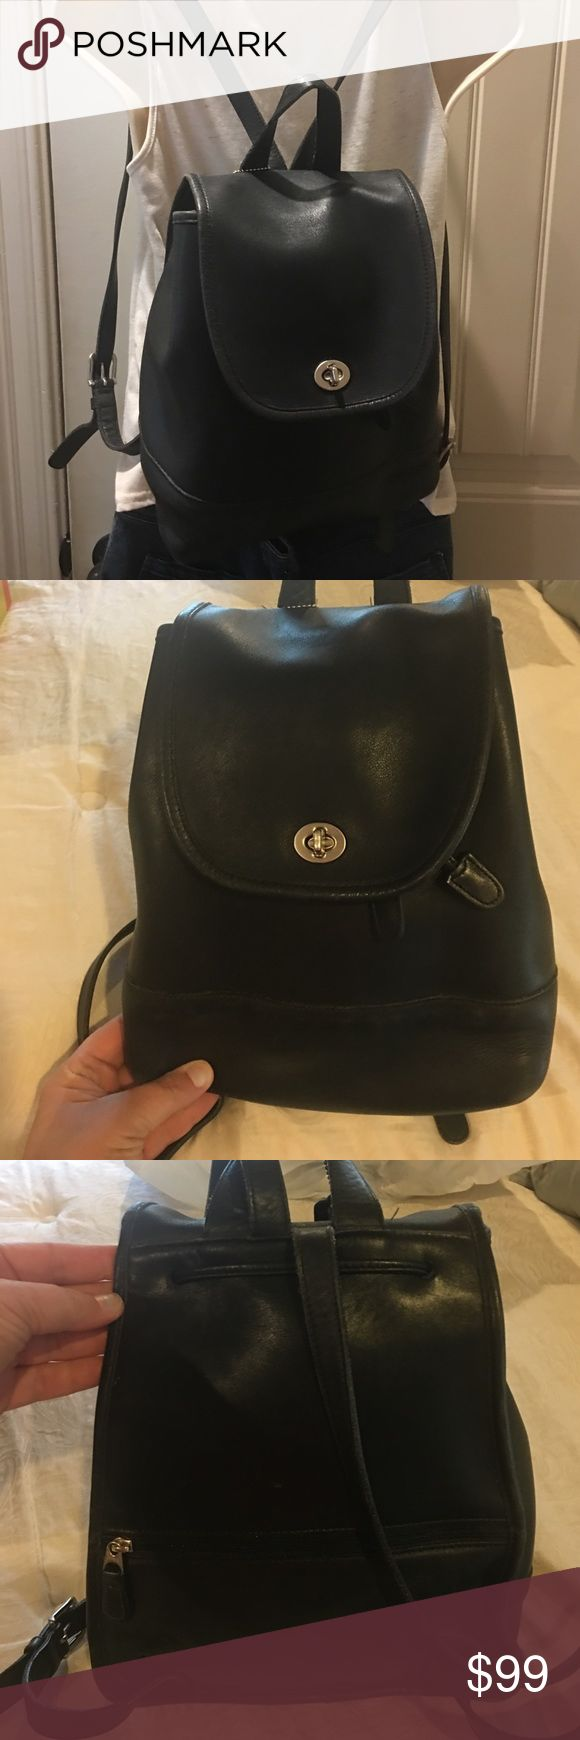 Vintage Coach leather backpack navy blue EUC Vintage Coach leather drawstring backpack.  Navy blue leather.  Shows some wear & rubbing on the trim (as pictured).  No other major issues.  Smoke free home.  Thanks! Coach Bags Backpacks